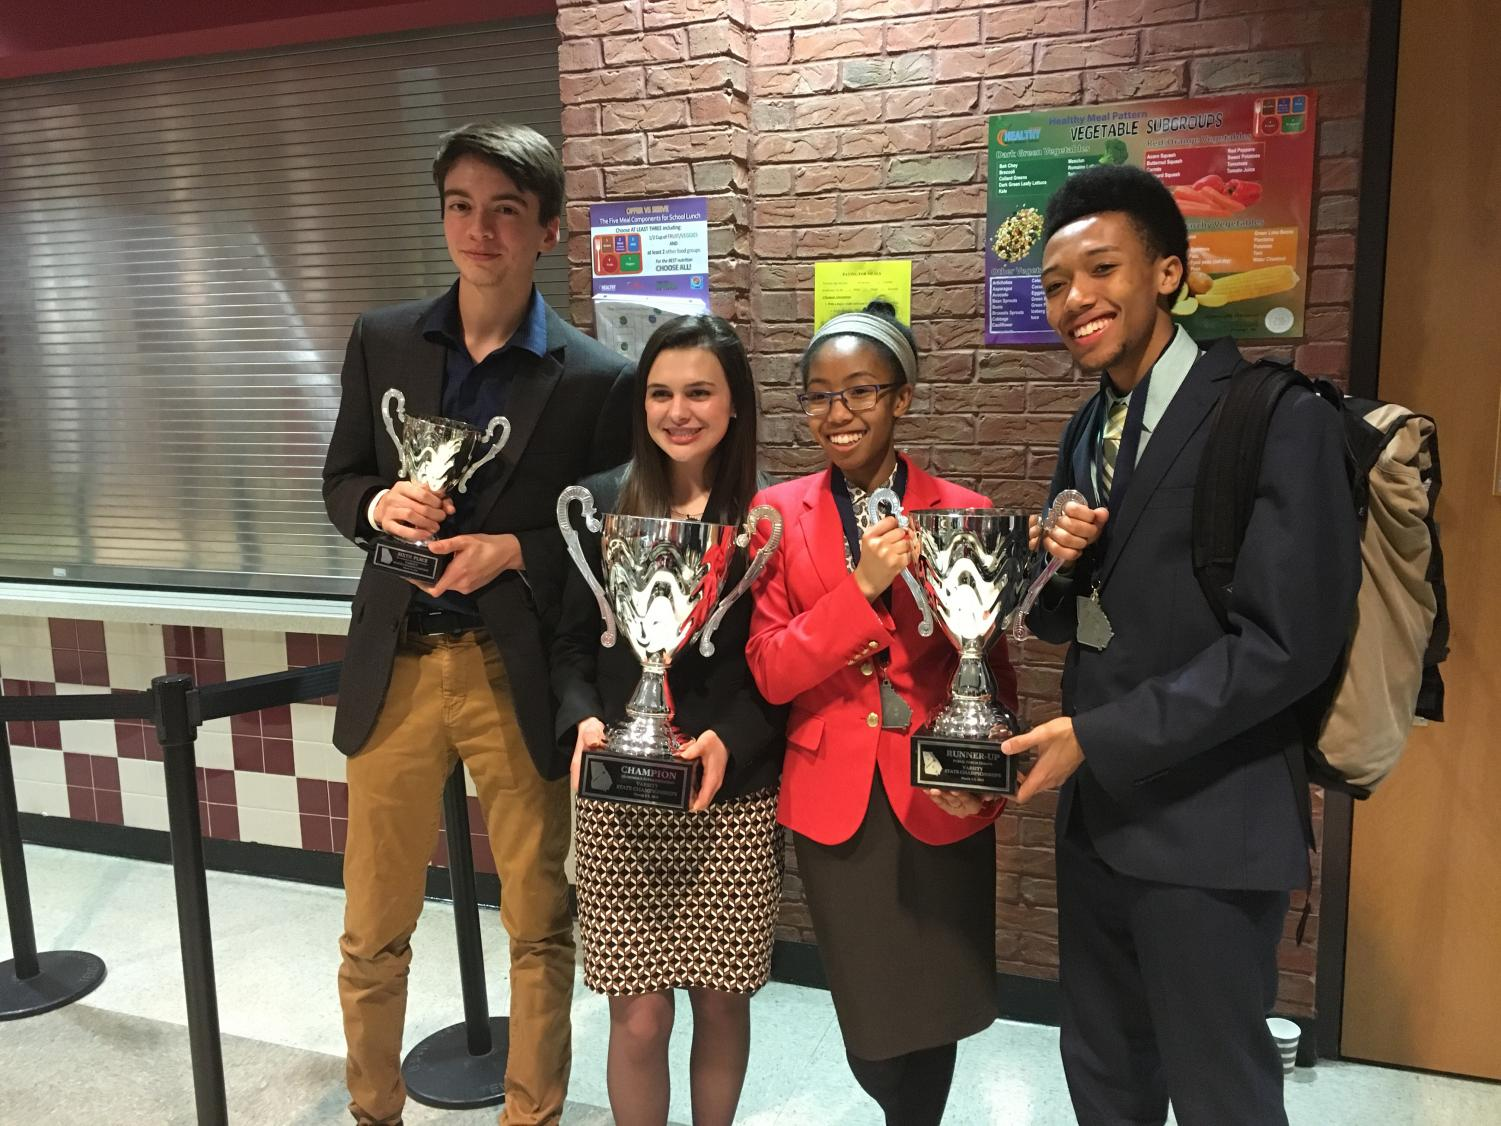 Scott Benefield, Rebekah Carnes, Nyla Crayton, and Caleb Crayton poses with their trophies. Benefield got sixth place and Carnes got first place in the Humorous Interpretation event of speech while the Craytons got second place in the Public Forum.